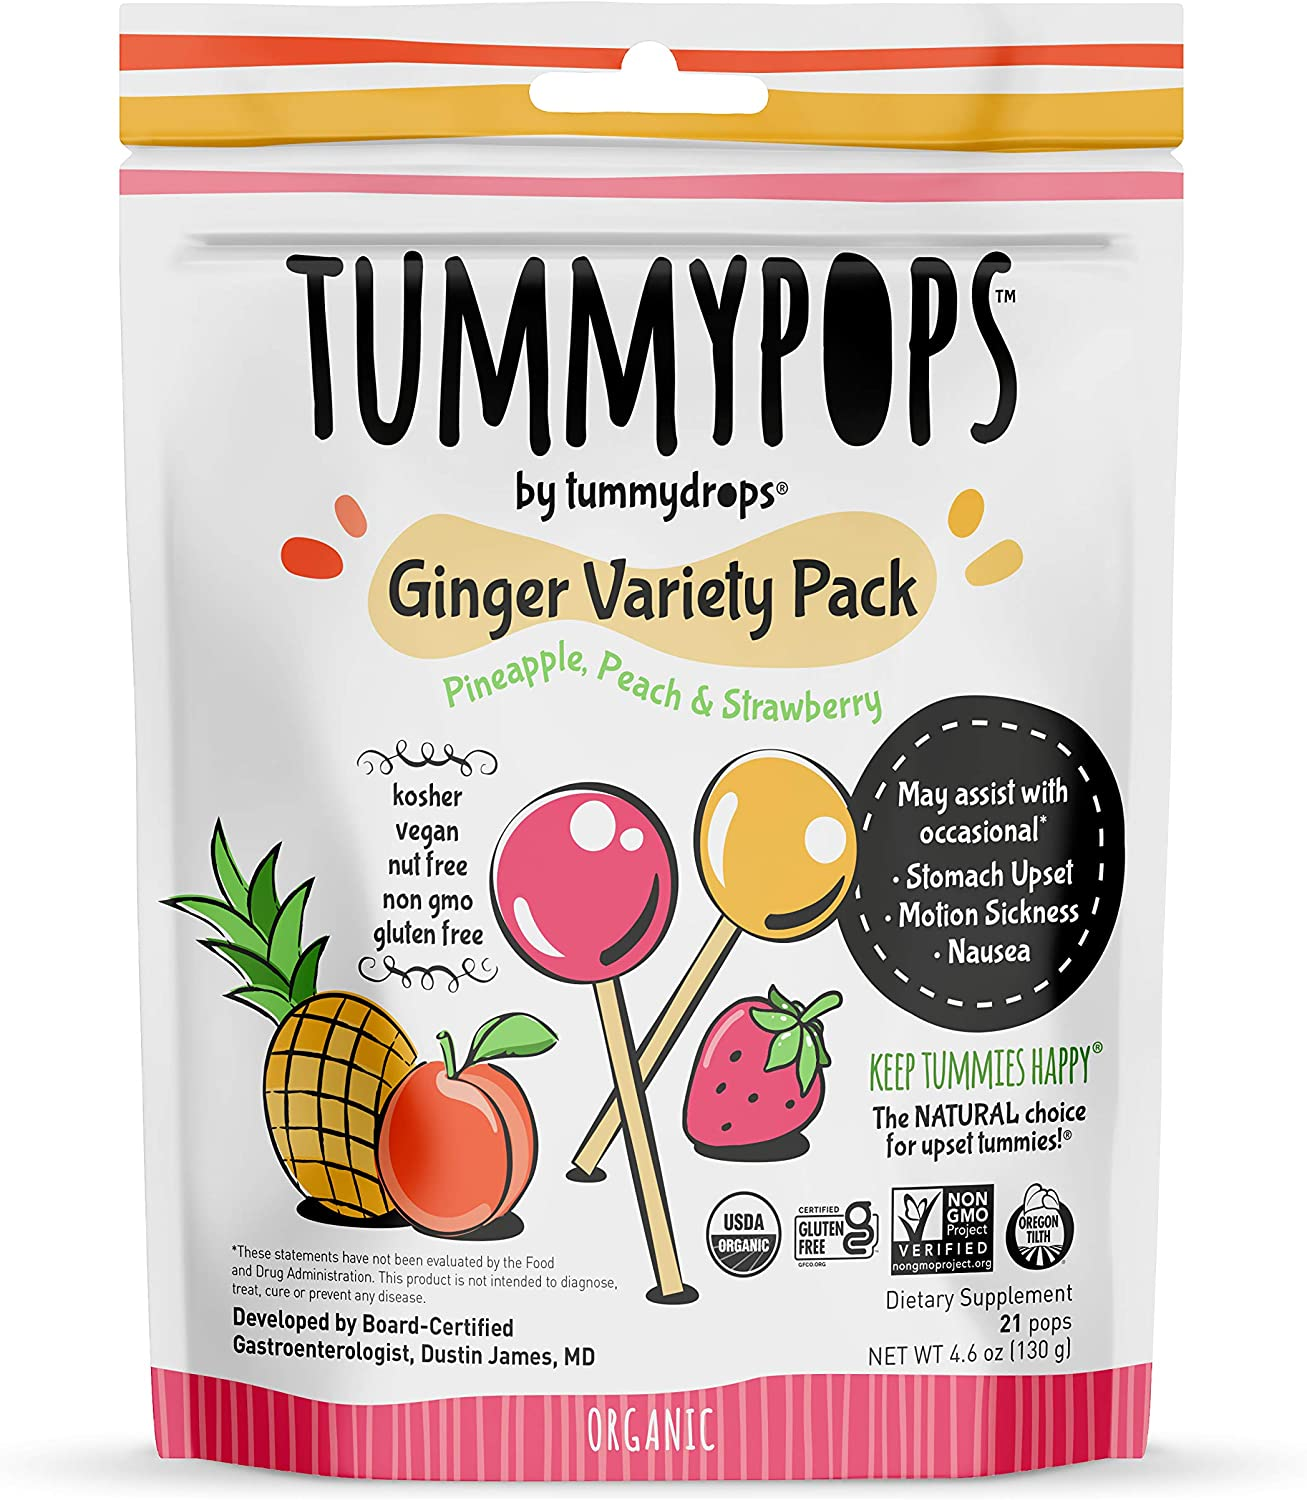 USDA Organic Tummypops Ginger Variety Pack (Pineapple, Peach, & Strawberry) : Grocery & Gourmet Food